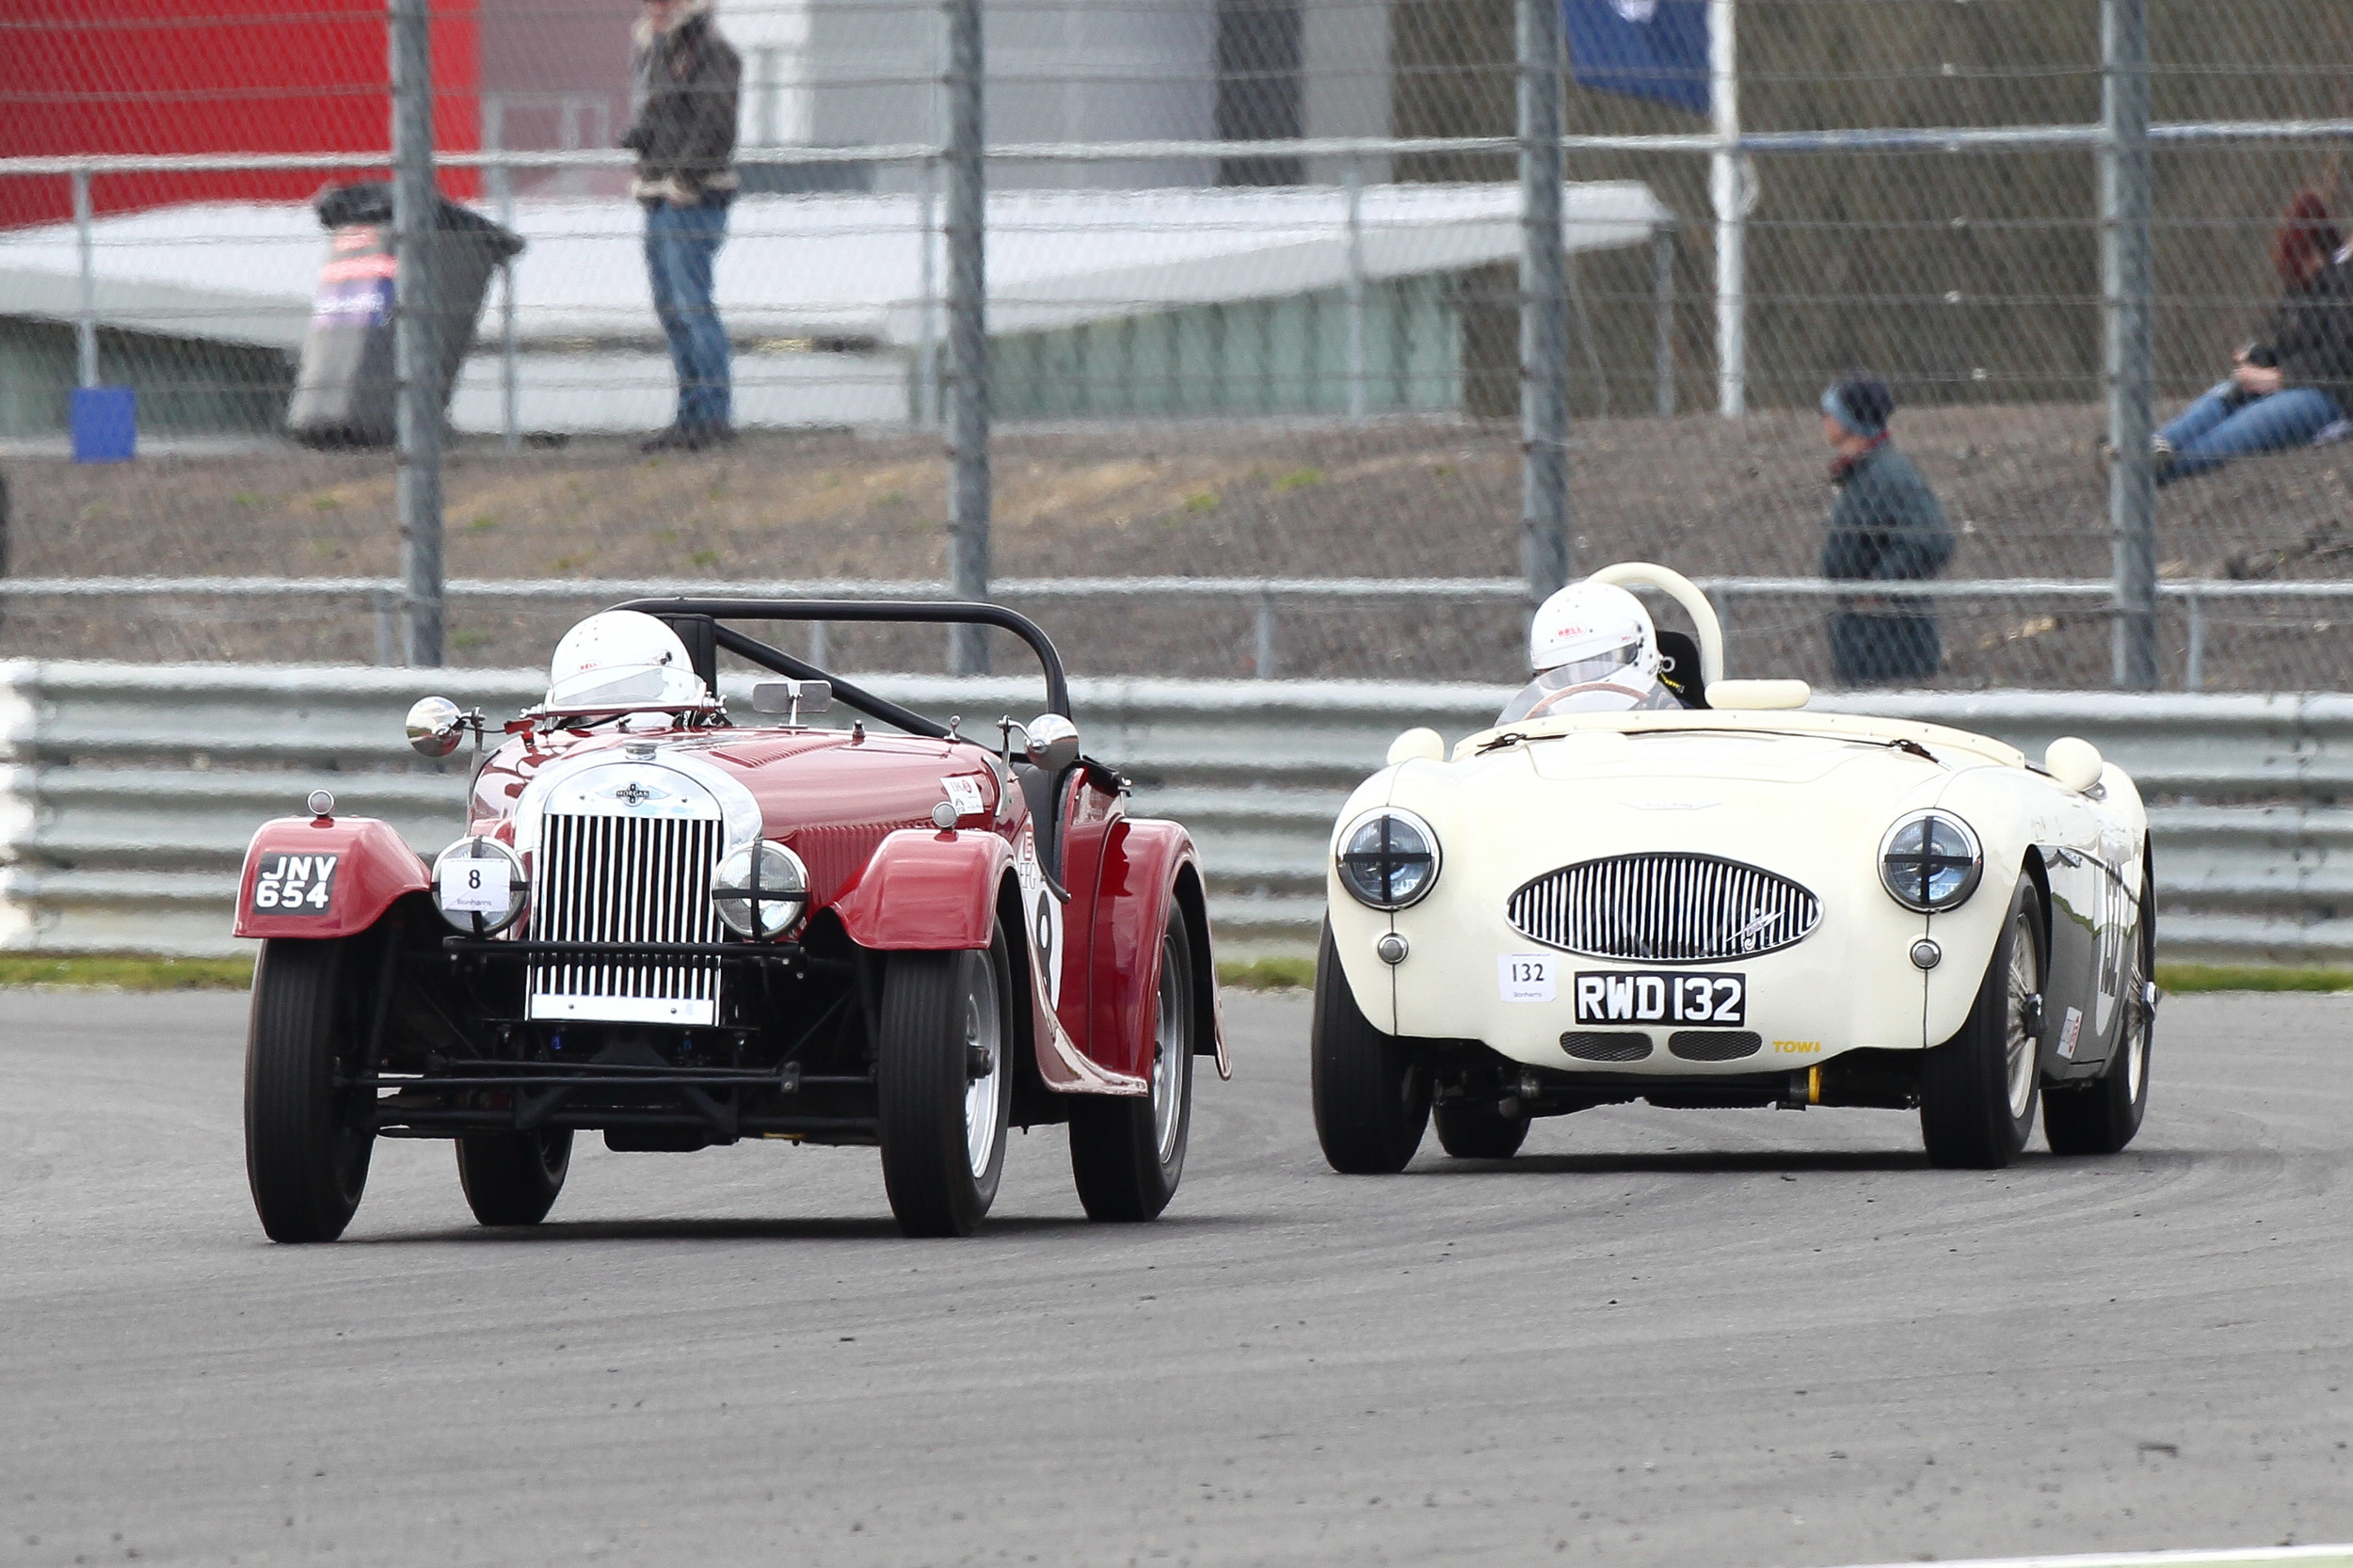 Peter Cole in Leigh Sebba's Morgan Plus 4, followed here by Patrick Rignell in the equally rare Austin Healey 100s, a car once campaigned by Lance Macklin.                                                    Photo - Richard Styles